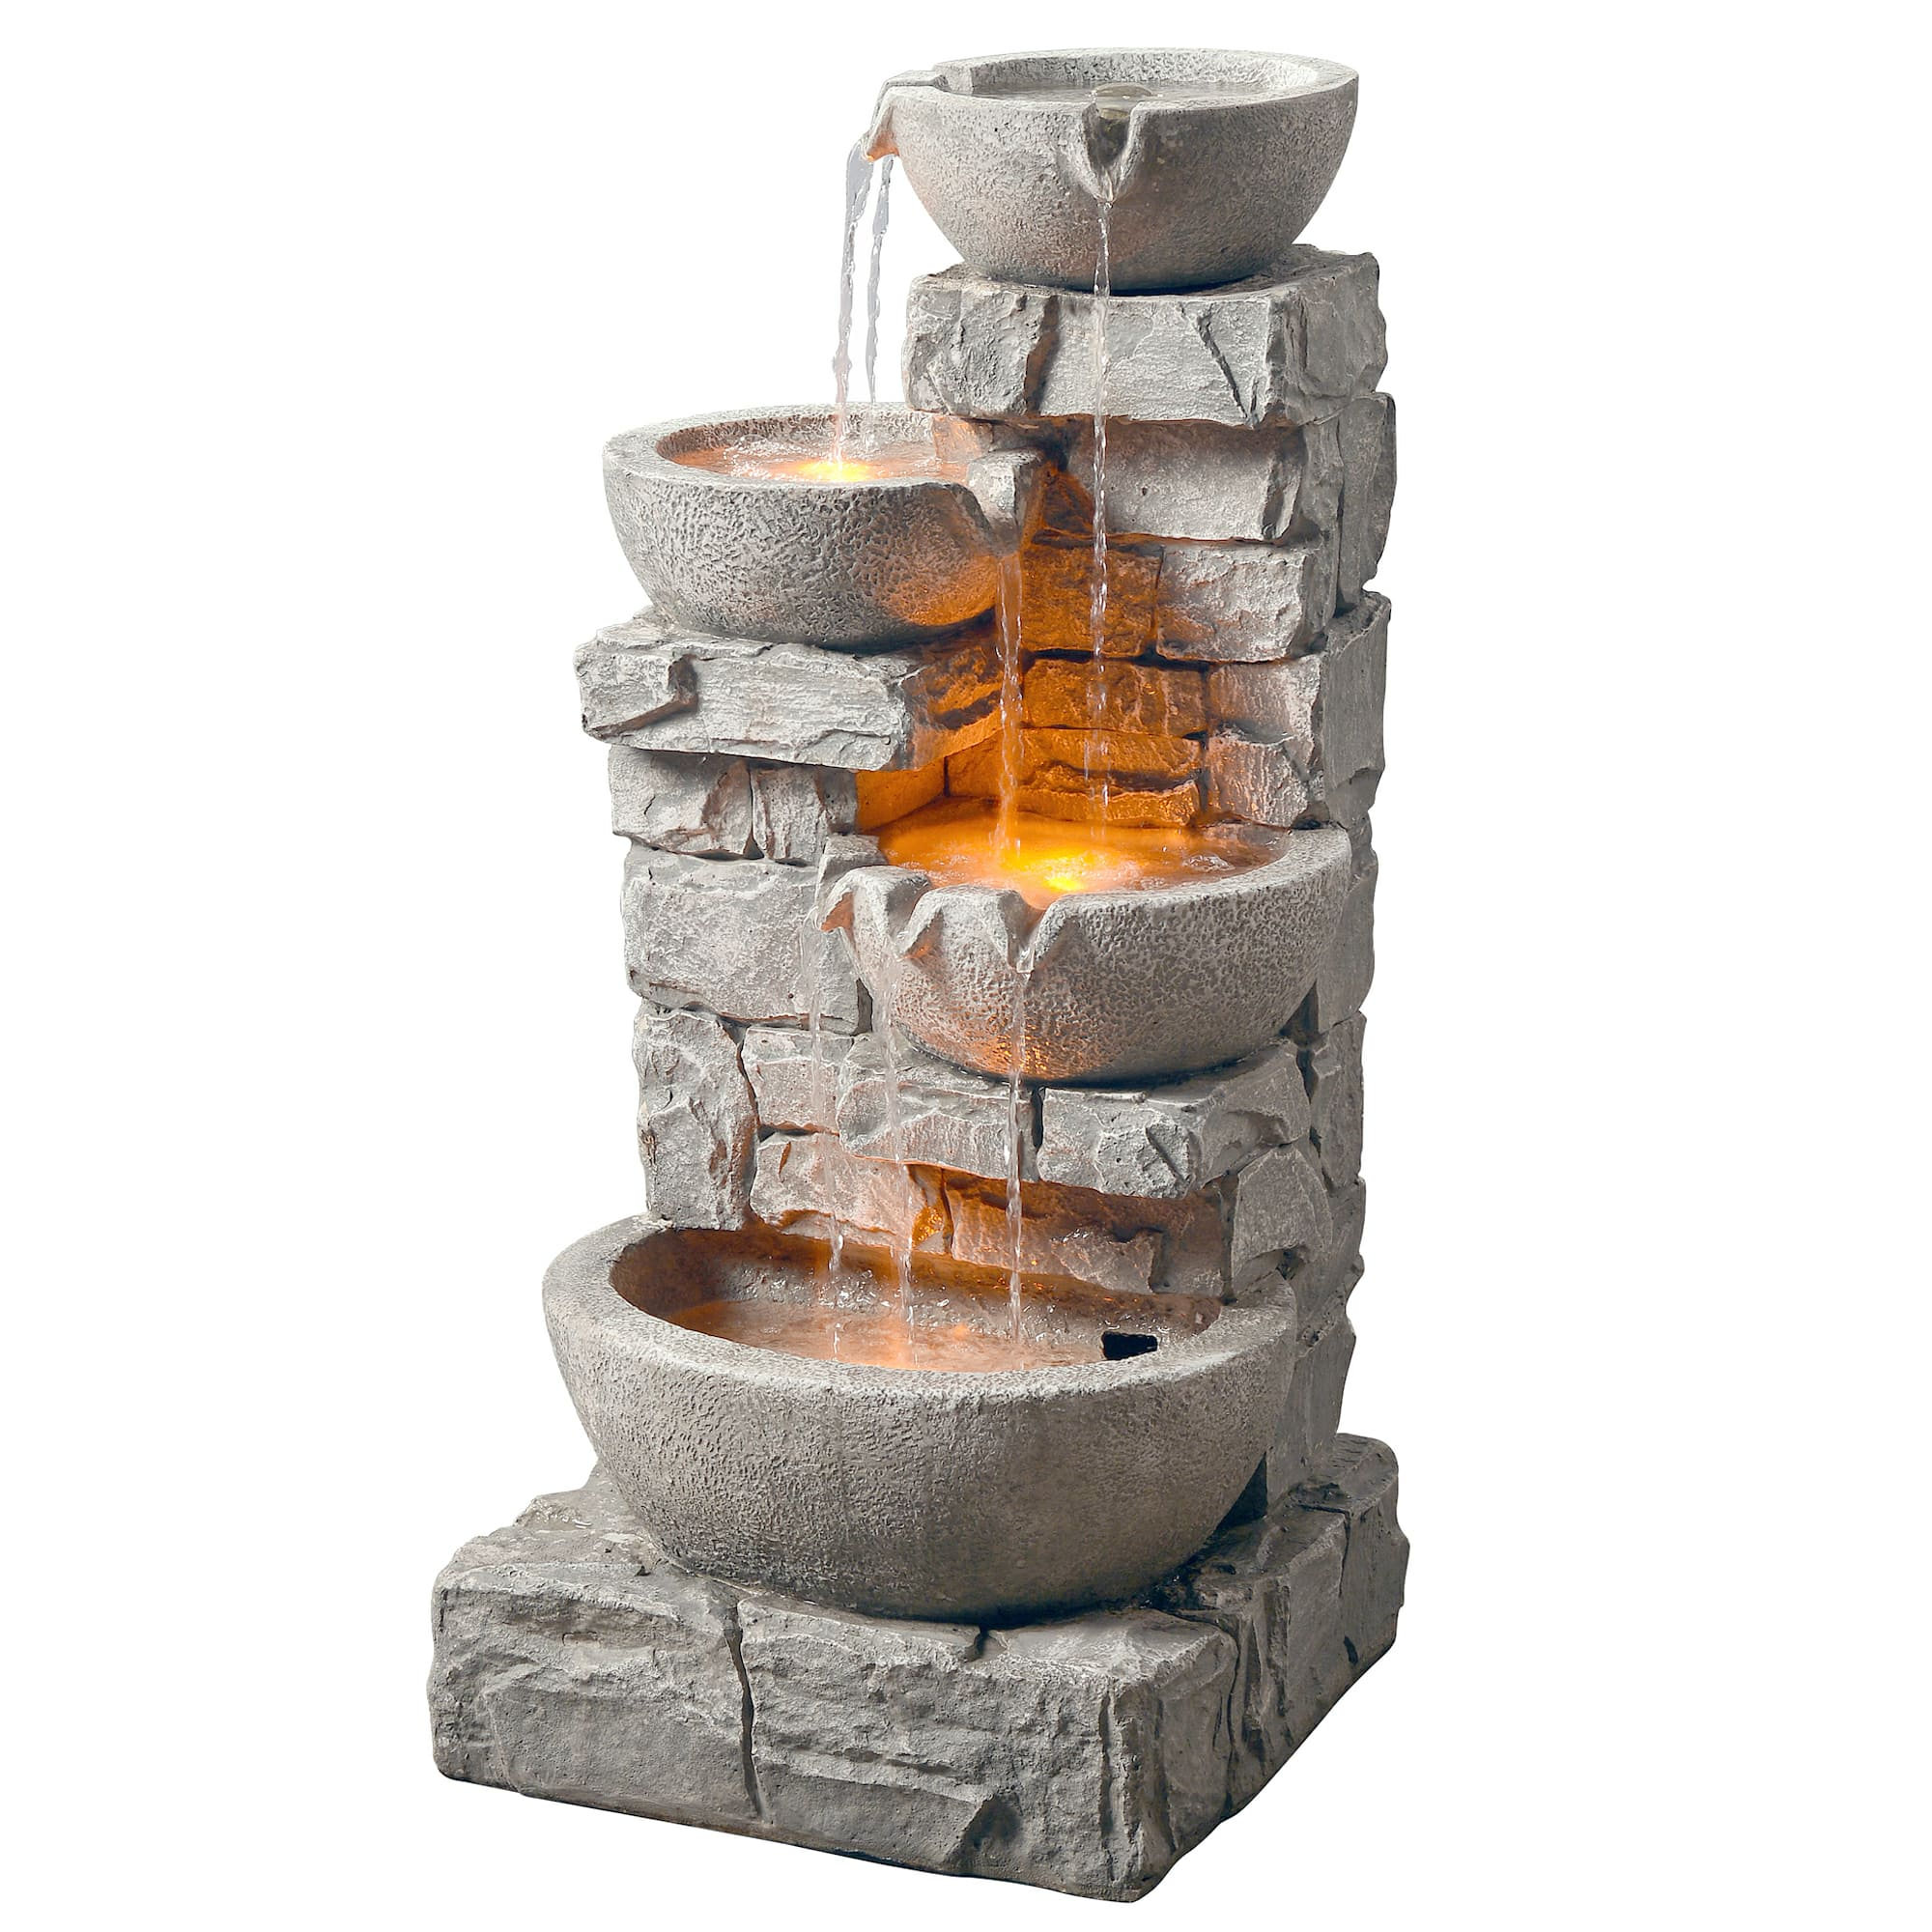 Outdoor Stacked Stone Tiered Bowls Fountain w/ LED Light - $125 FS Walmart.com